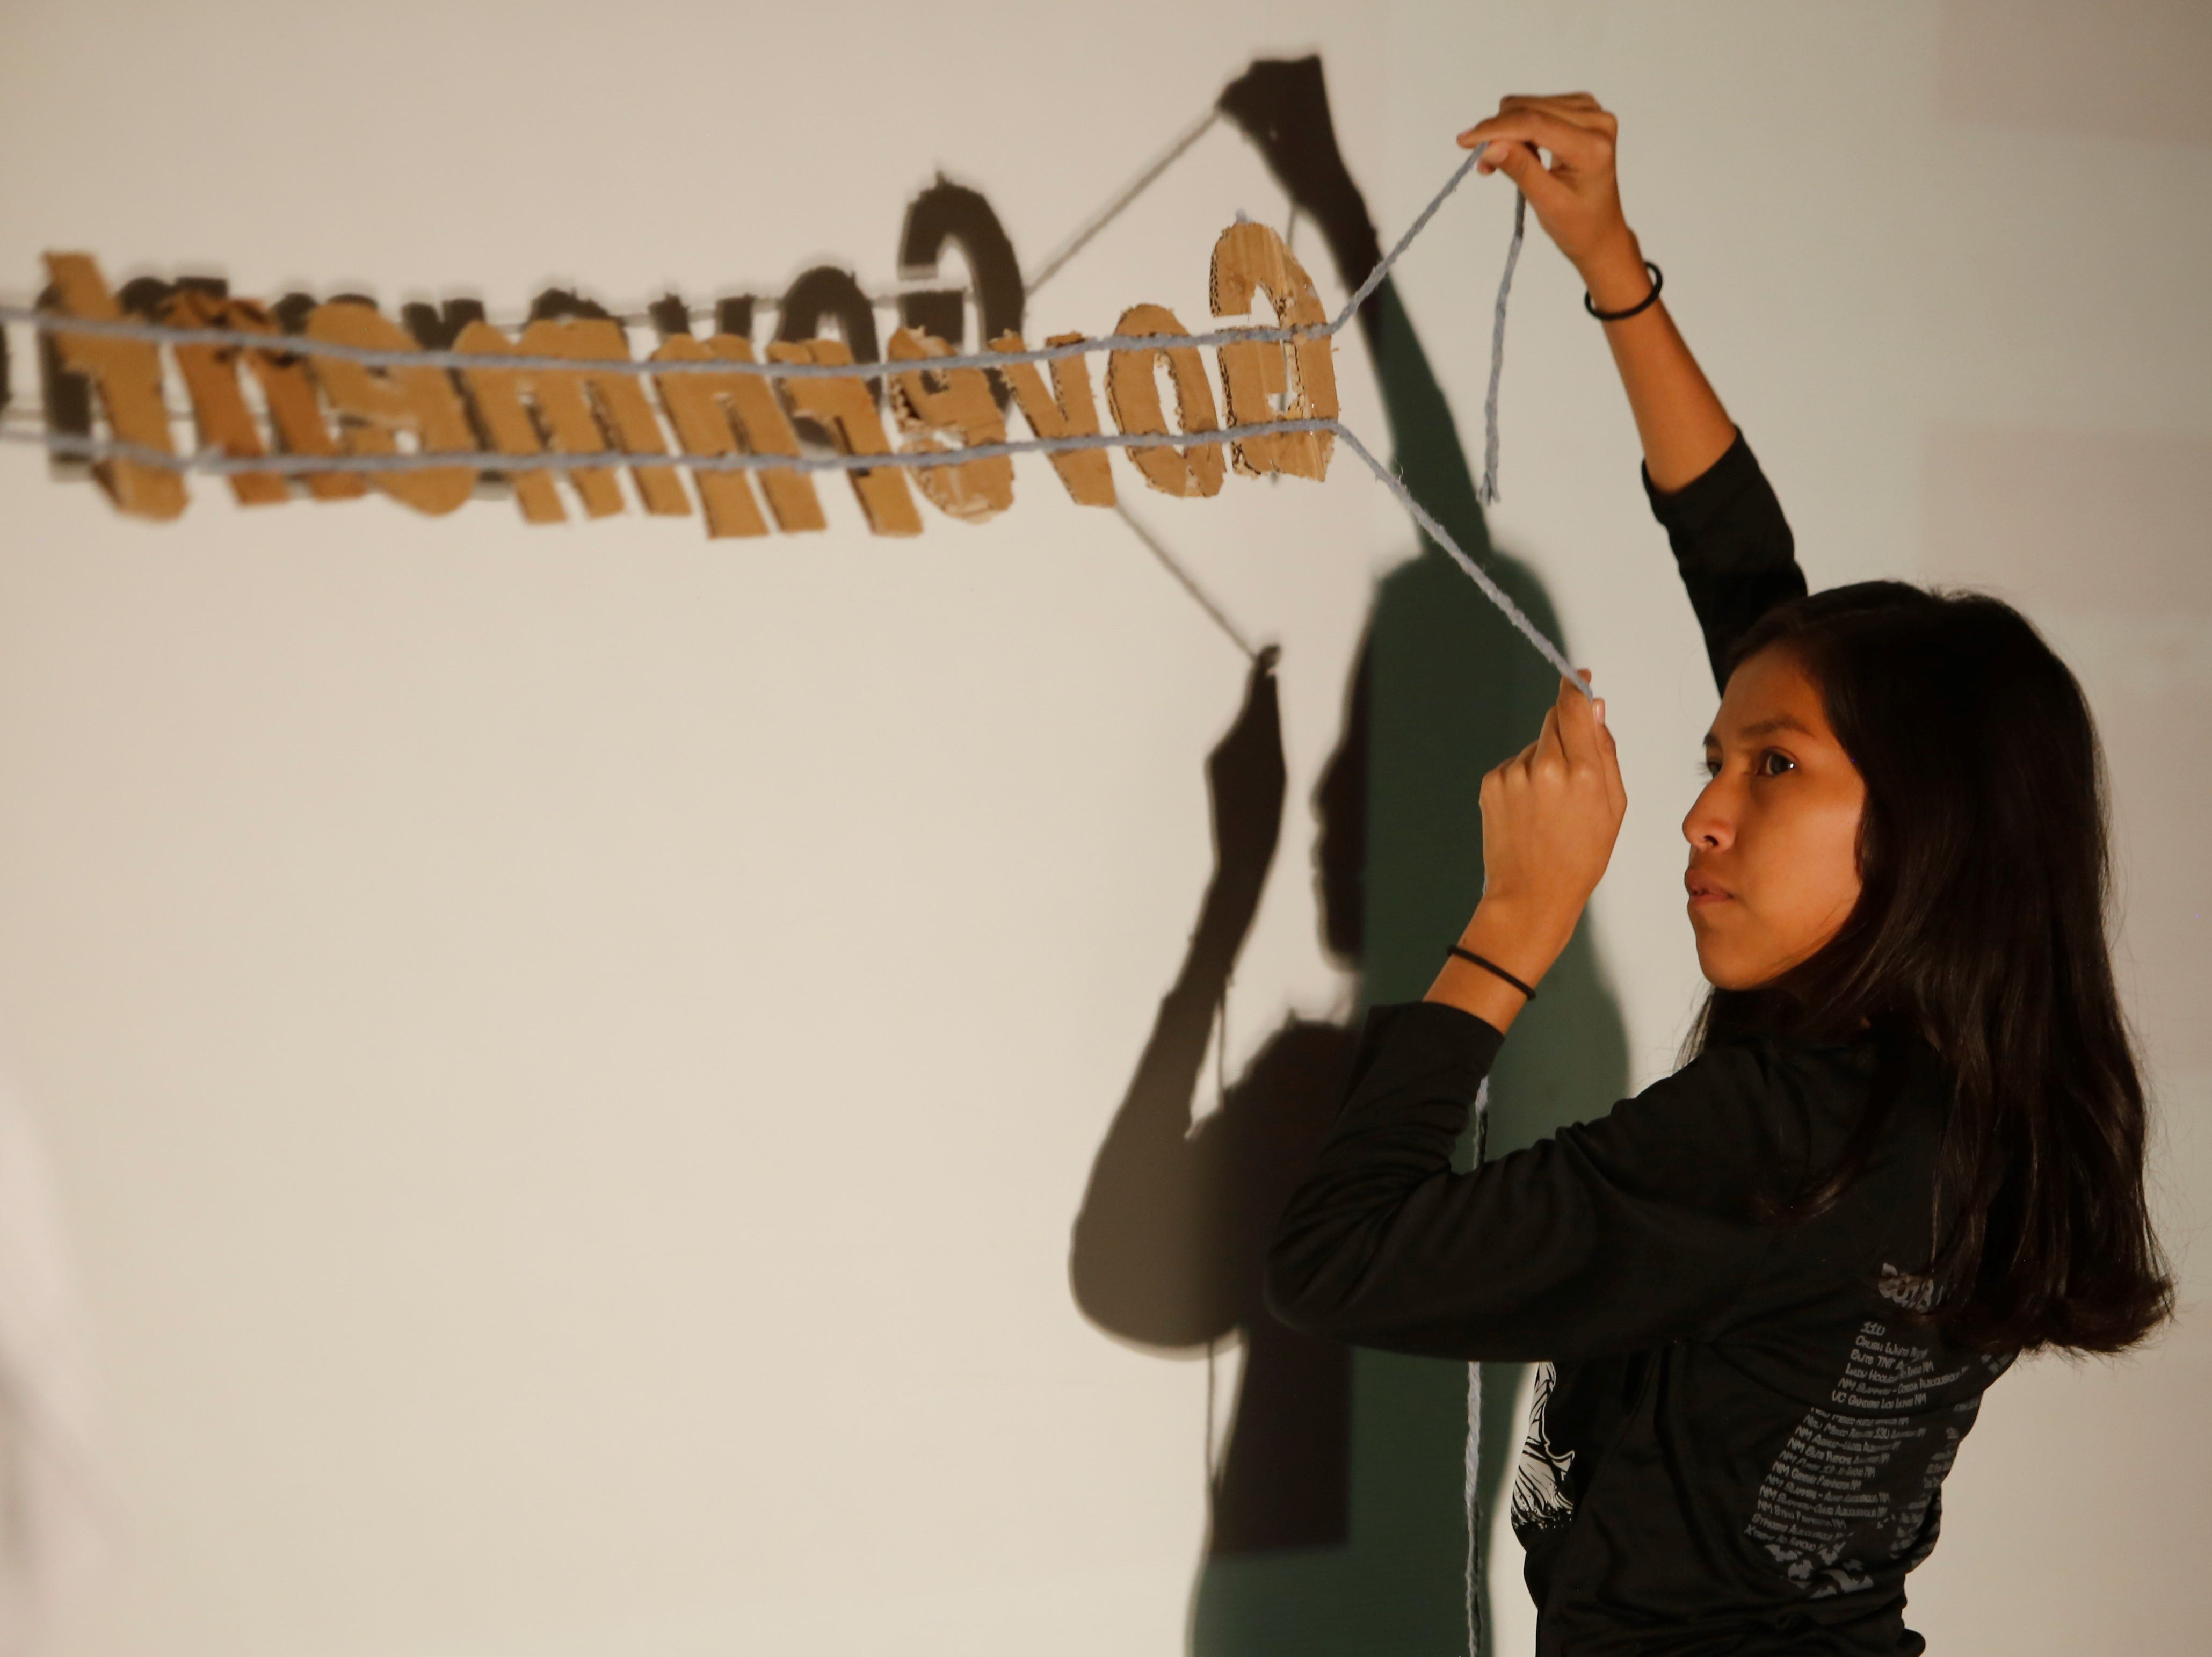 Middle school students feature Navajo history in shadow play